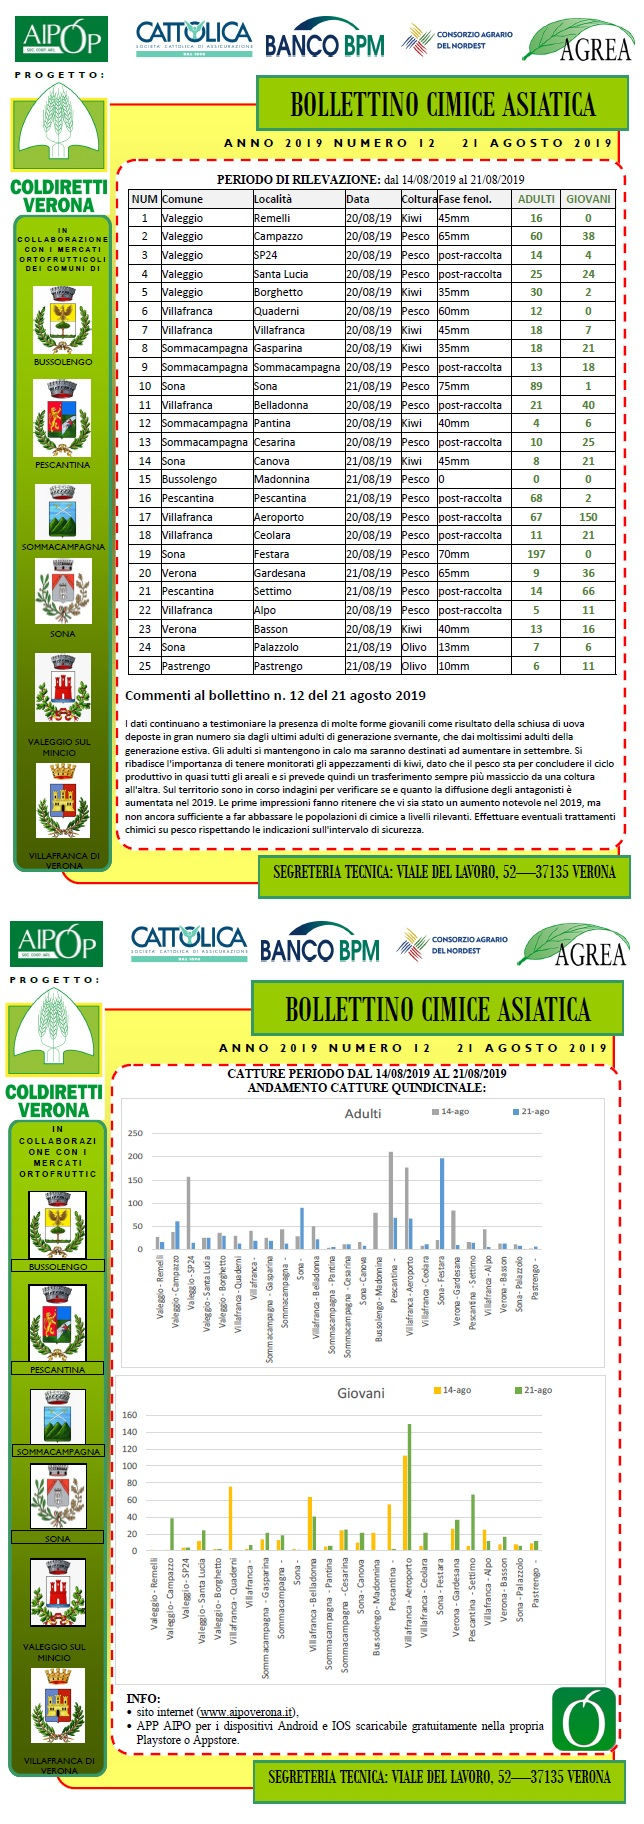 BOLLETTINO CIMICE ASIATICA N. 12 DEL 21/08/2019